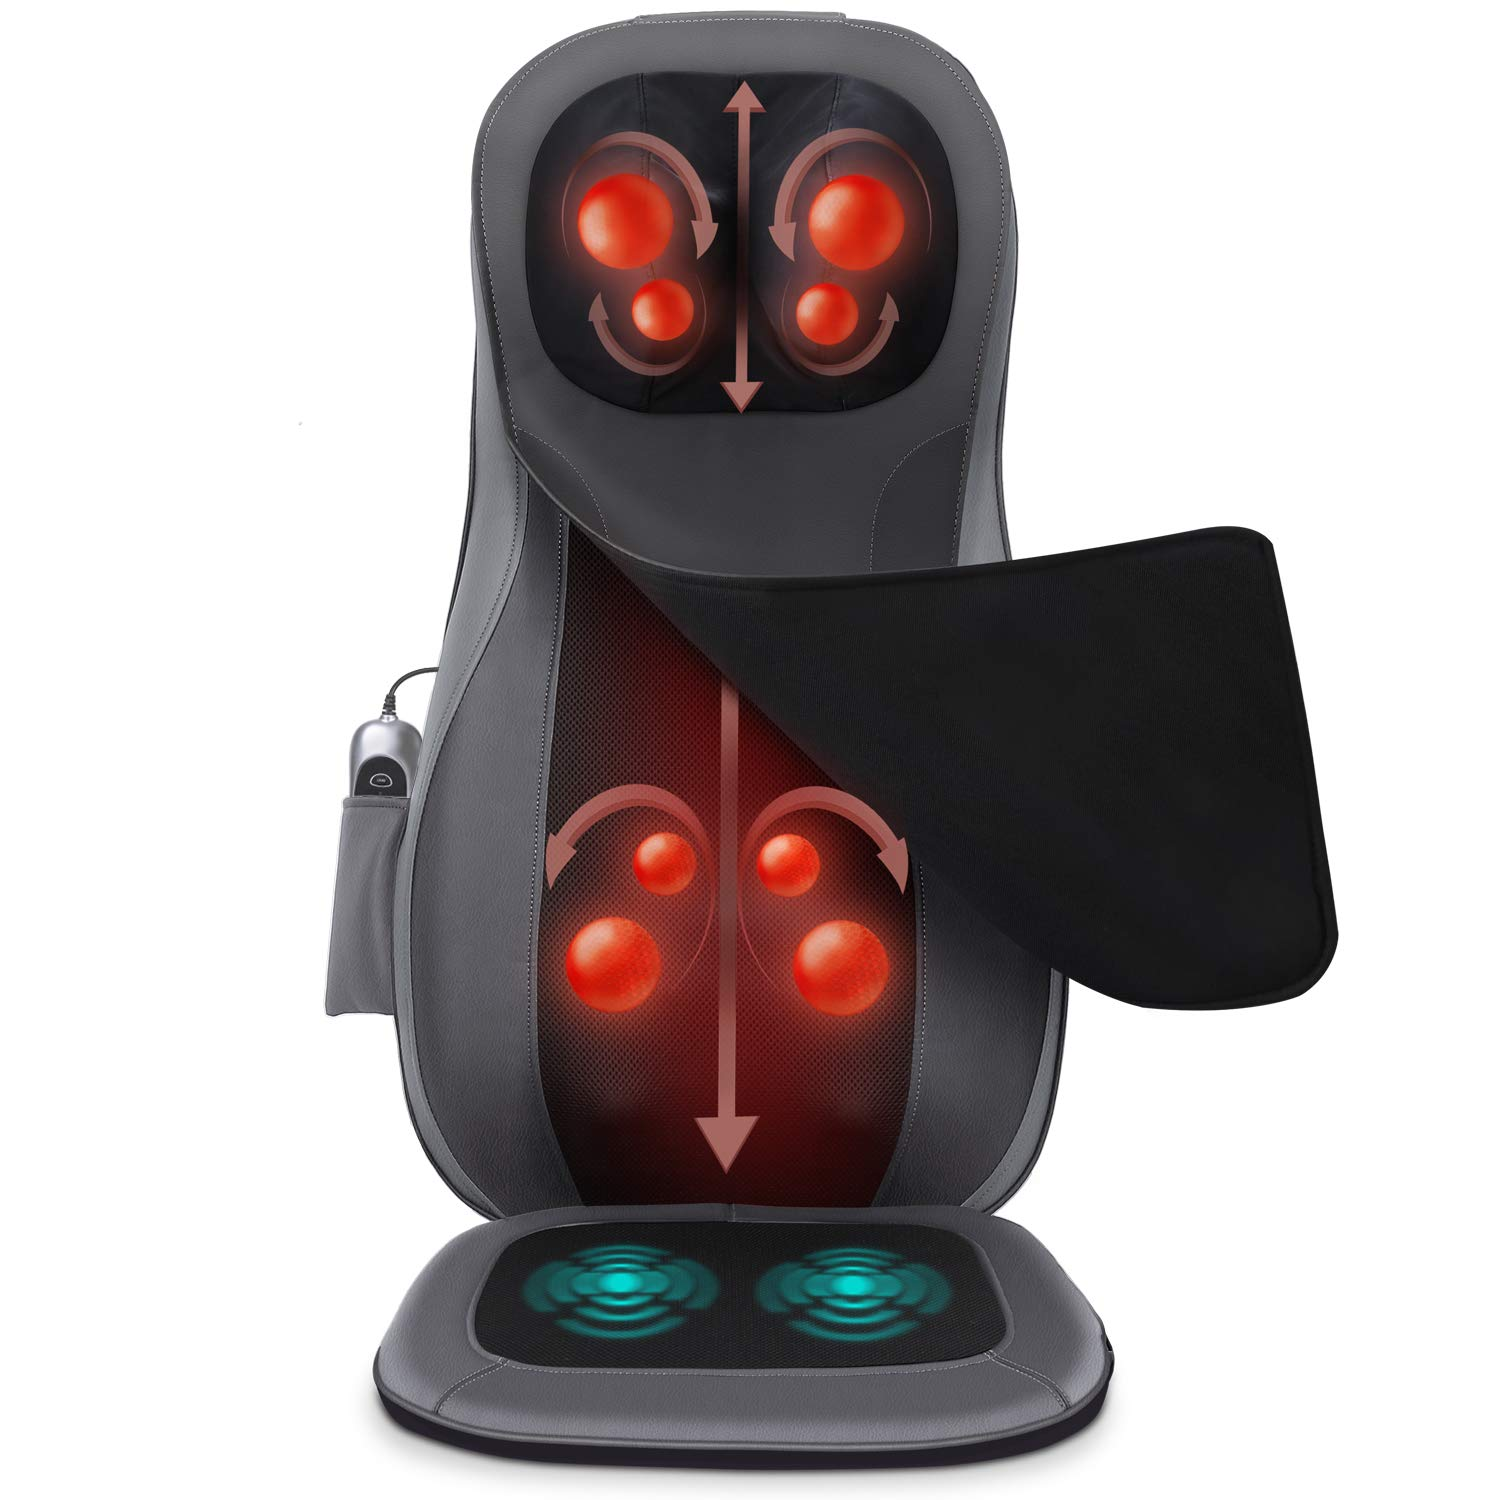 Naipo Back and Neck Massager Shiatsu Massage Chair Seat Cushion with Heat Rolling Kneading Vibration for Pin-Point Full Body at Office, Home, Car